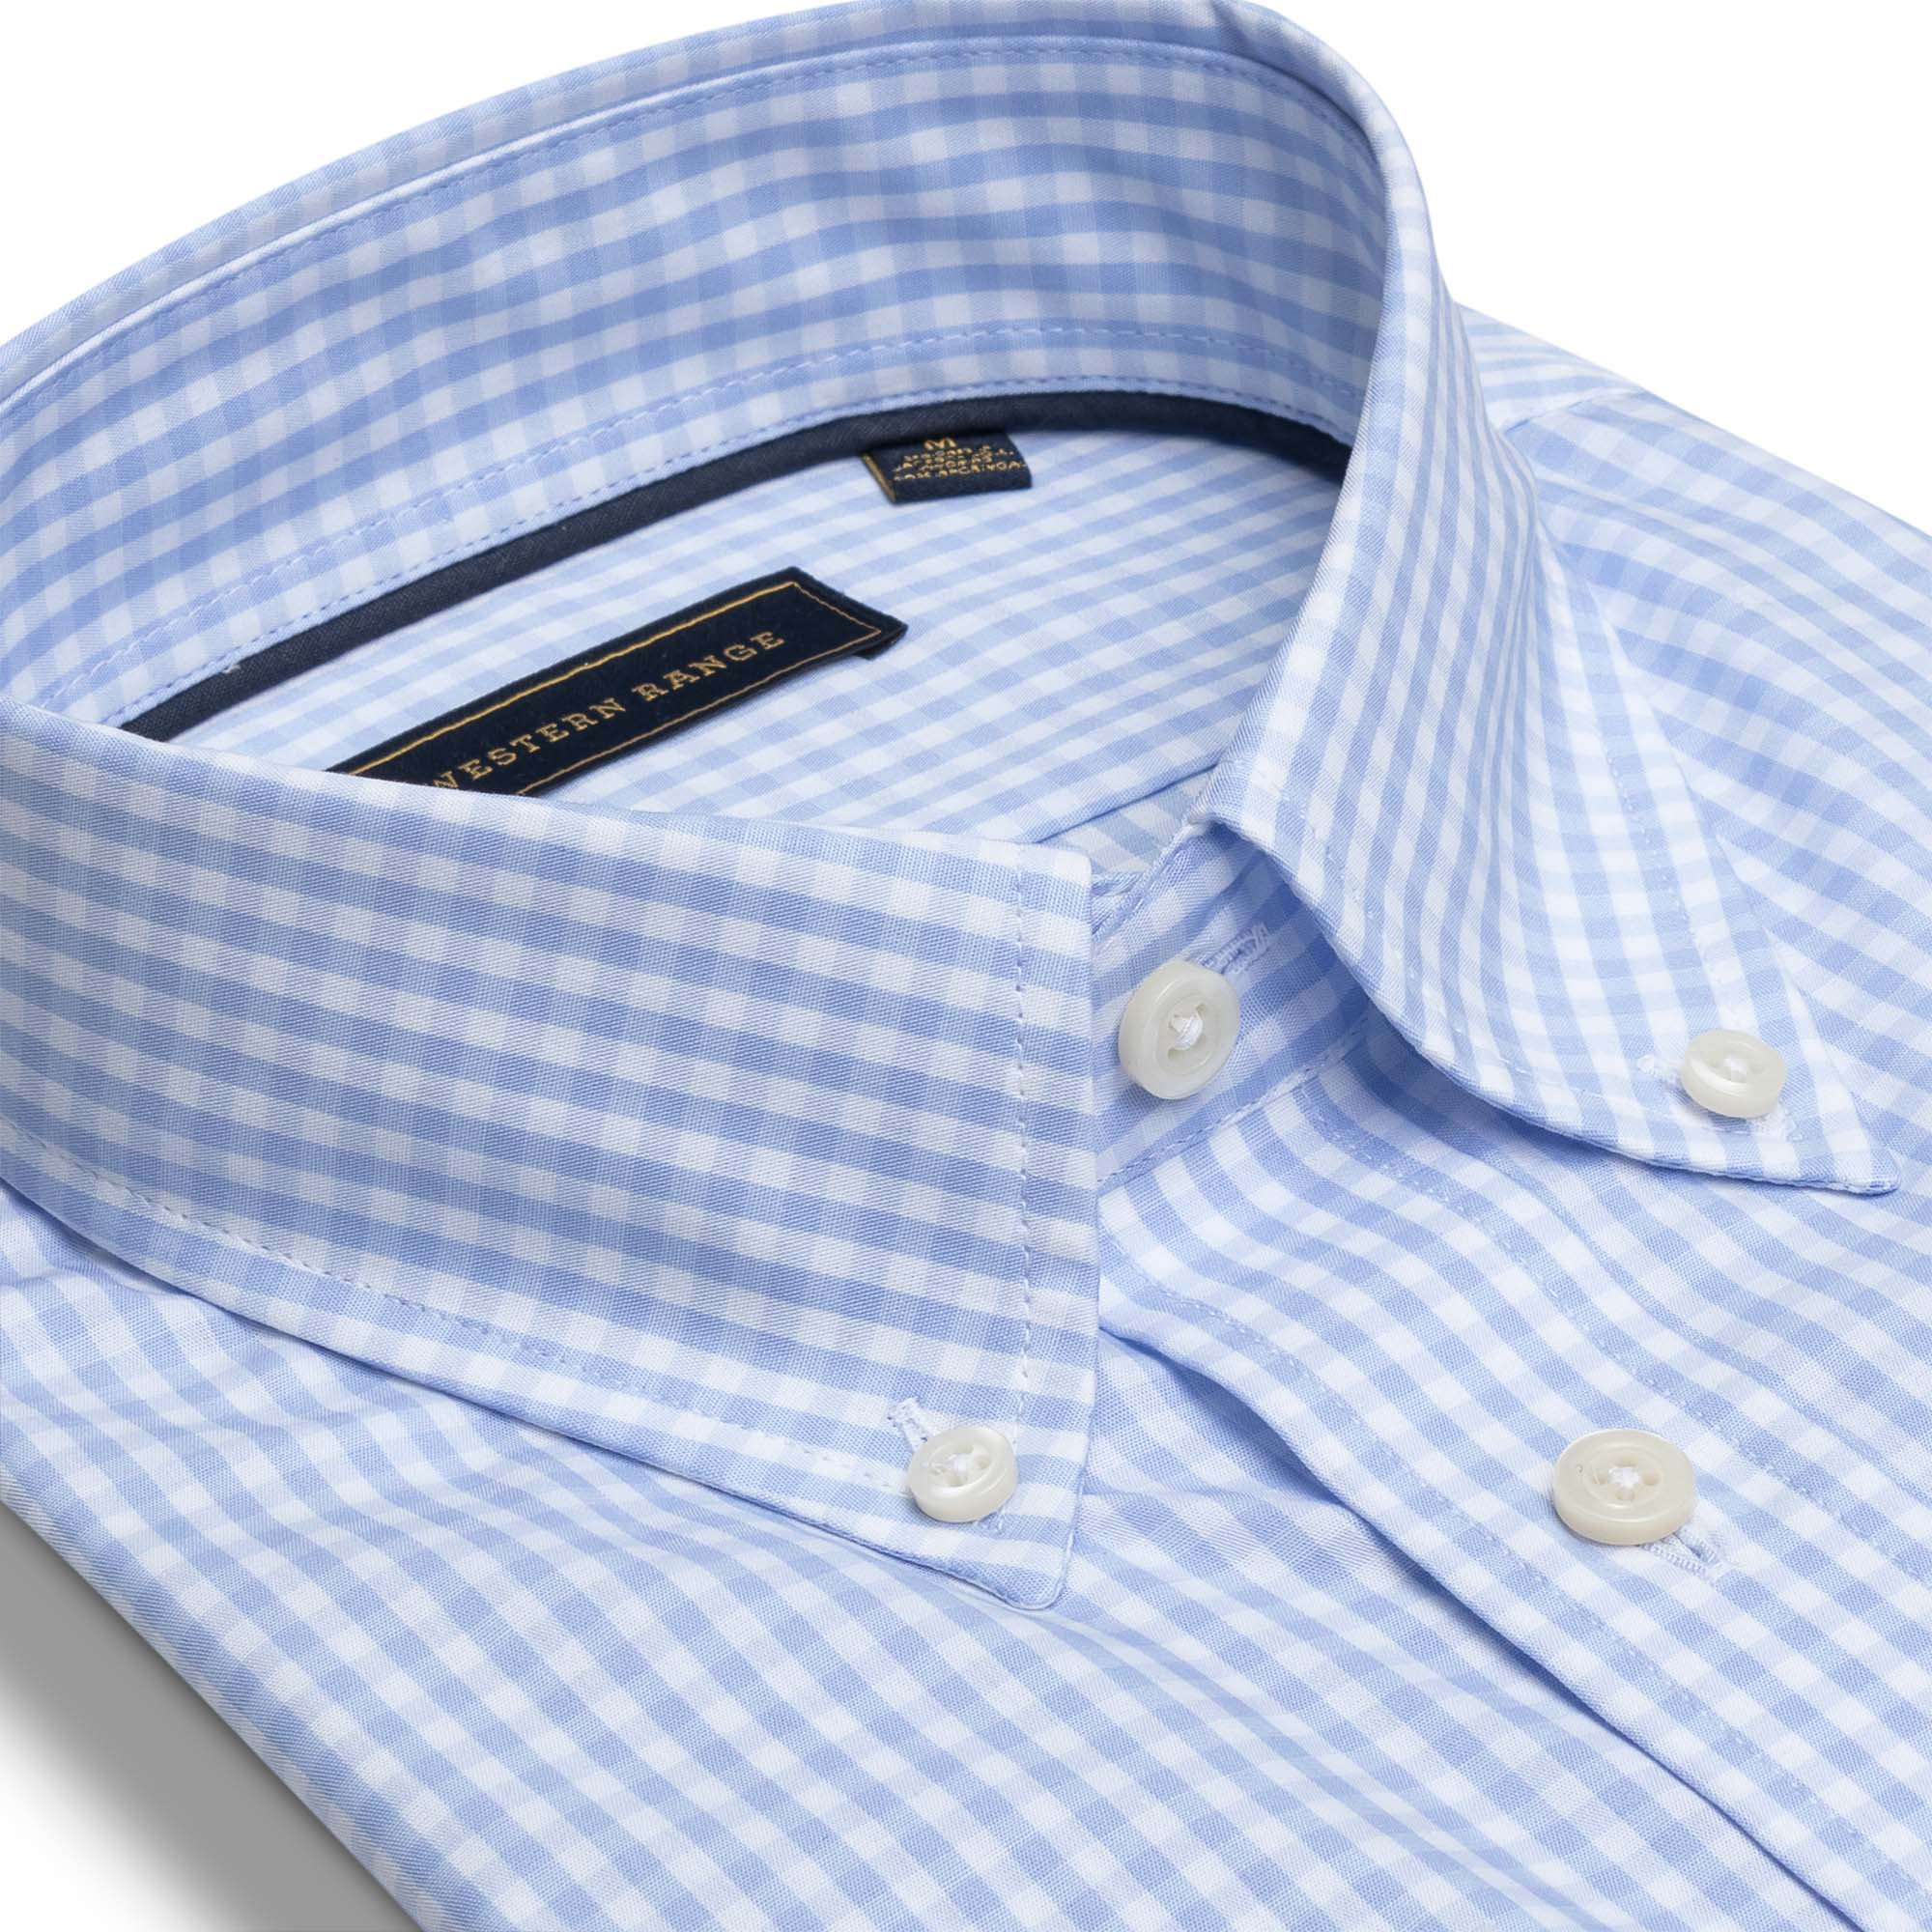 The Snake River Sport Shirt - Light Blue Gingham